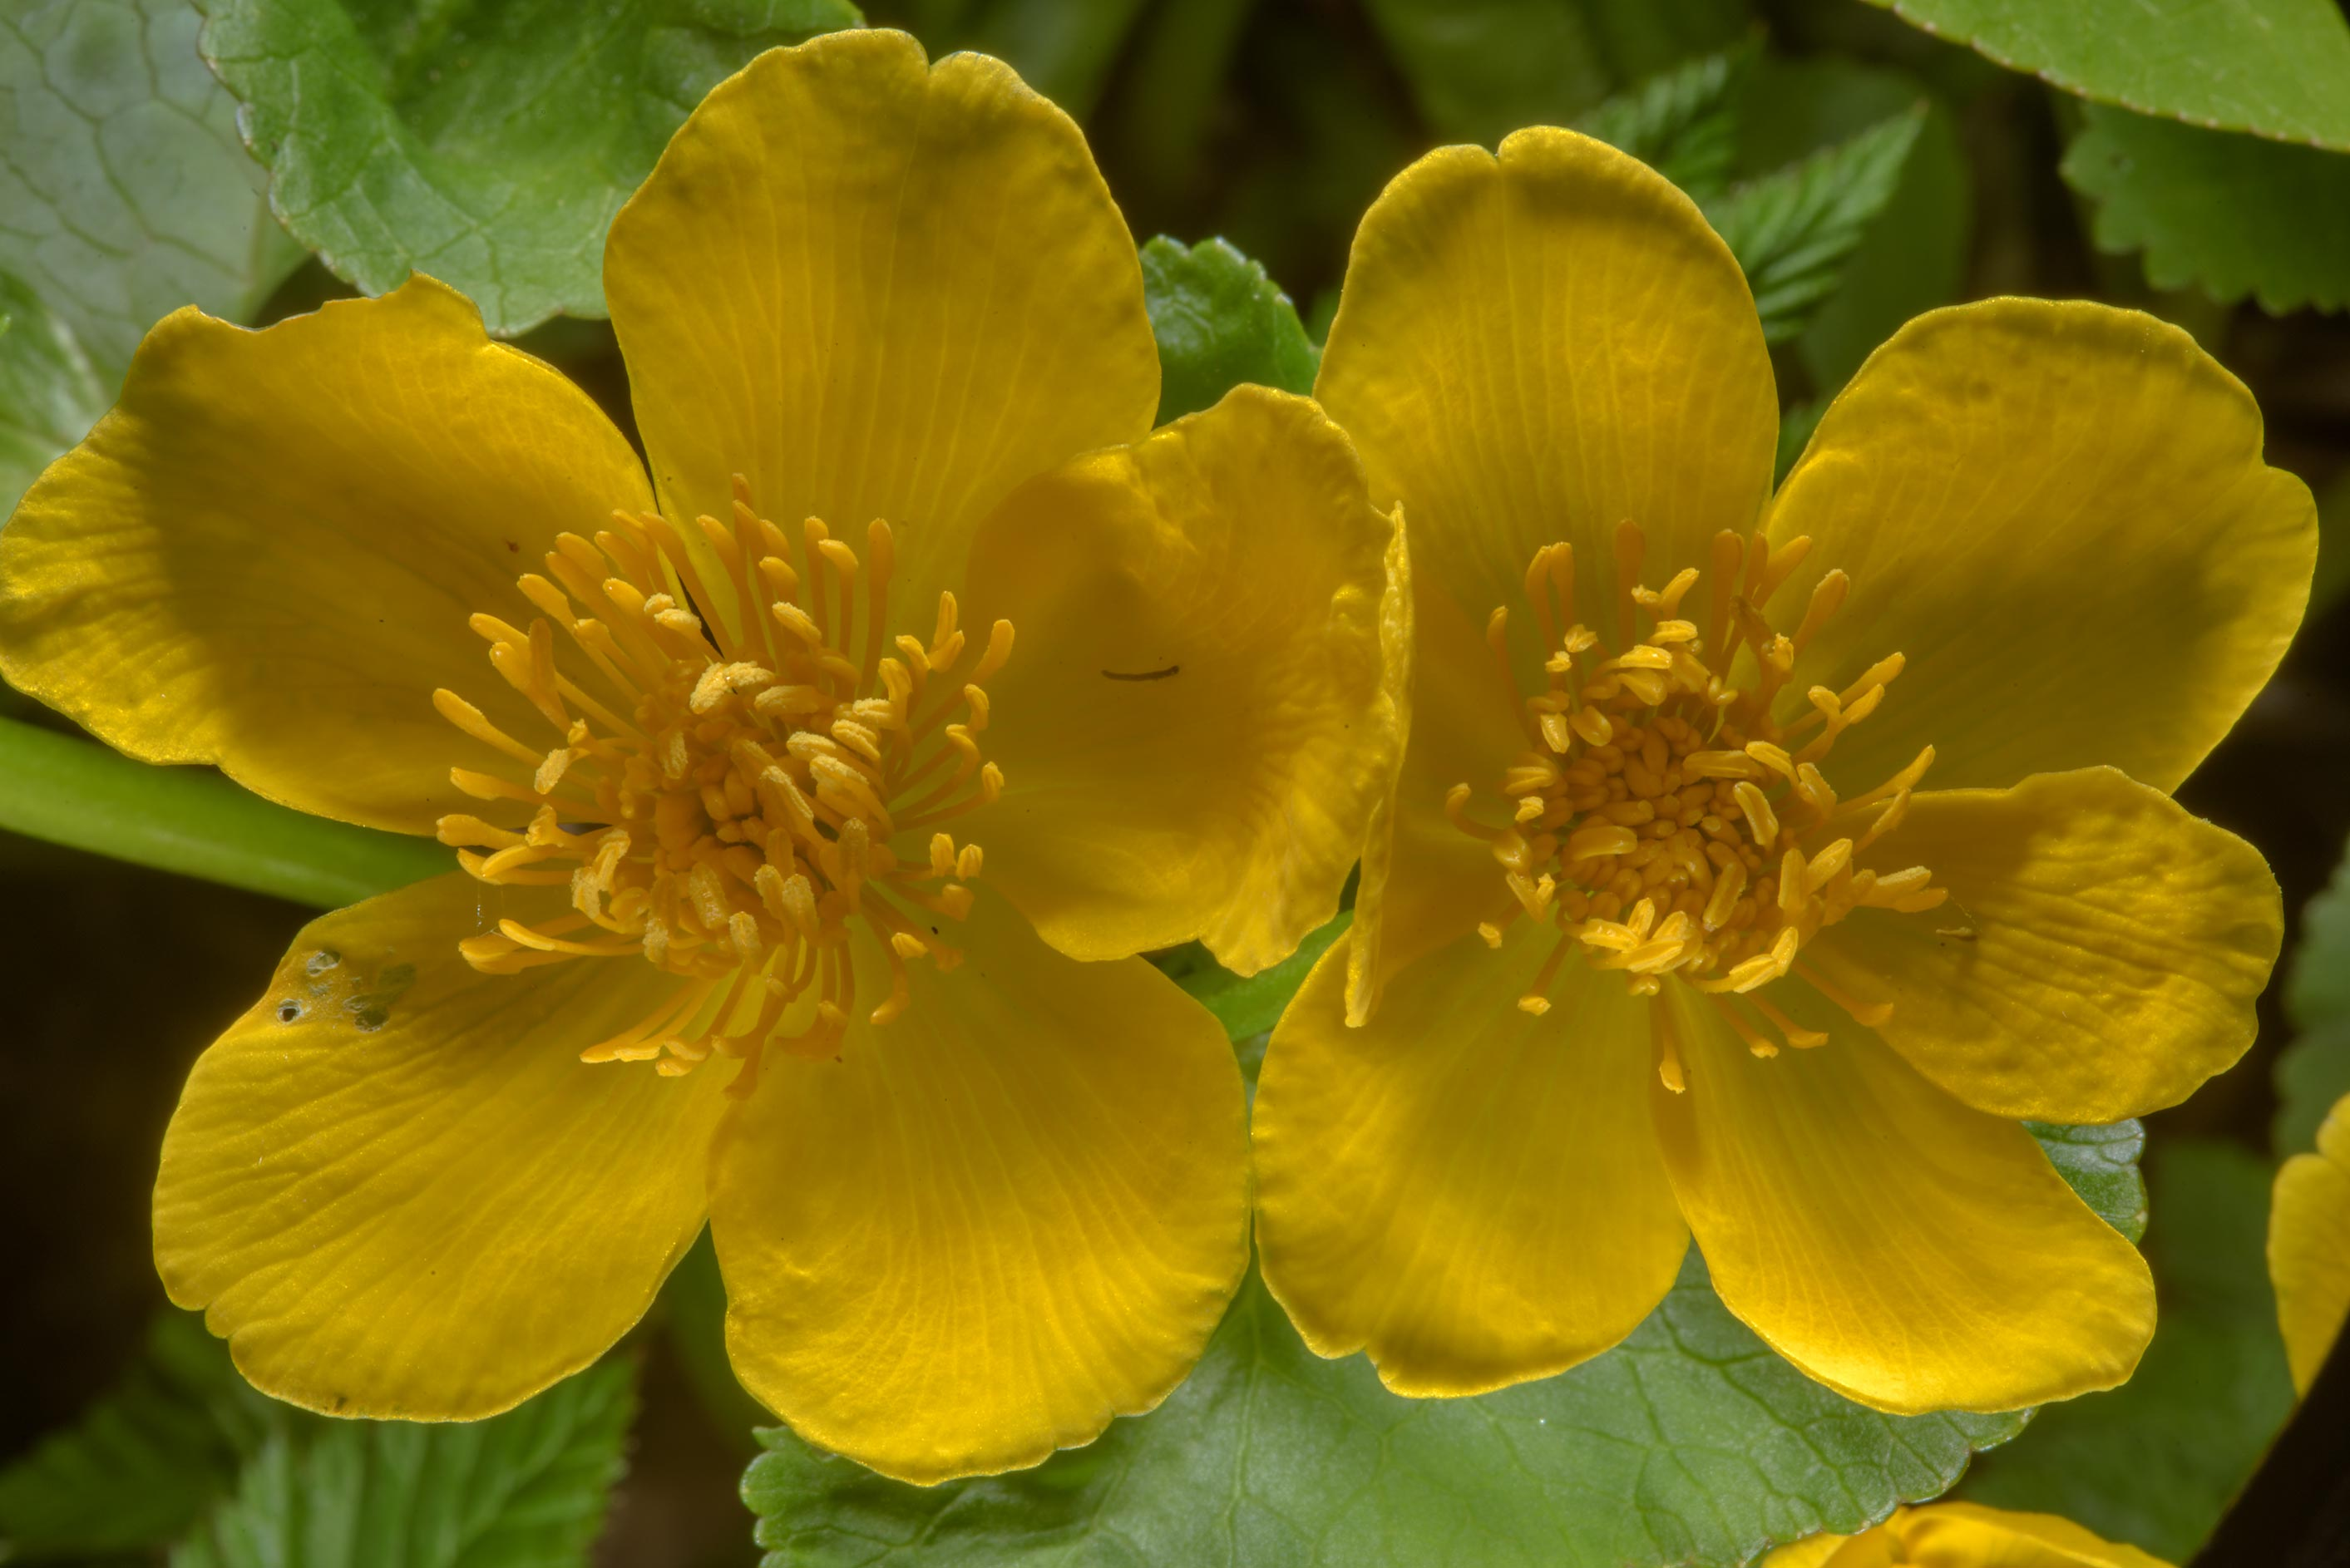 Marsh marigold (kingcup, Caltha palustris...West from St.Petersburg, Russia